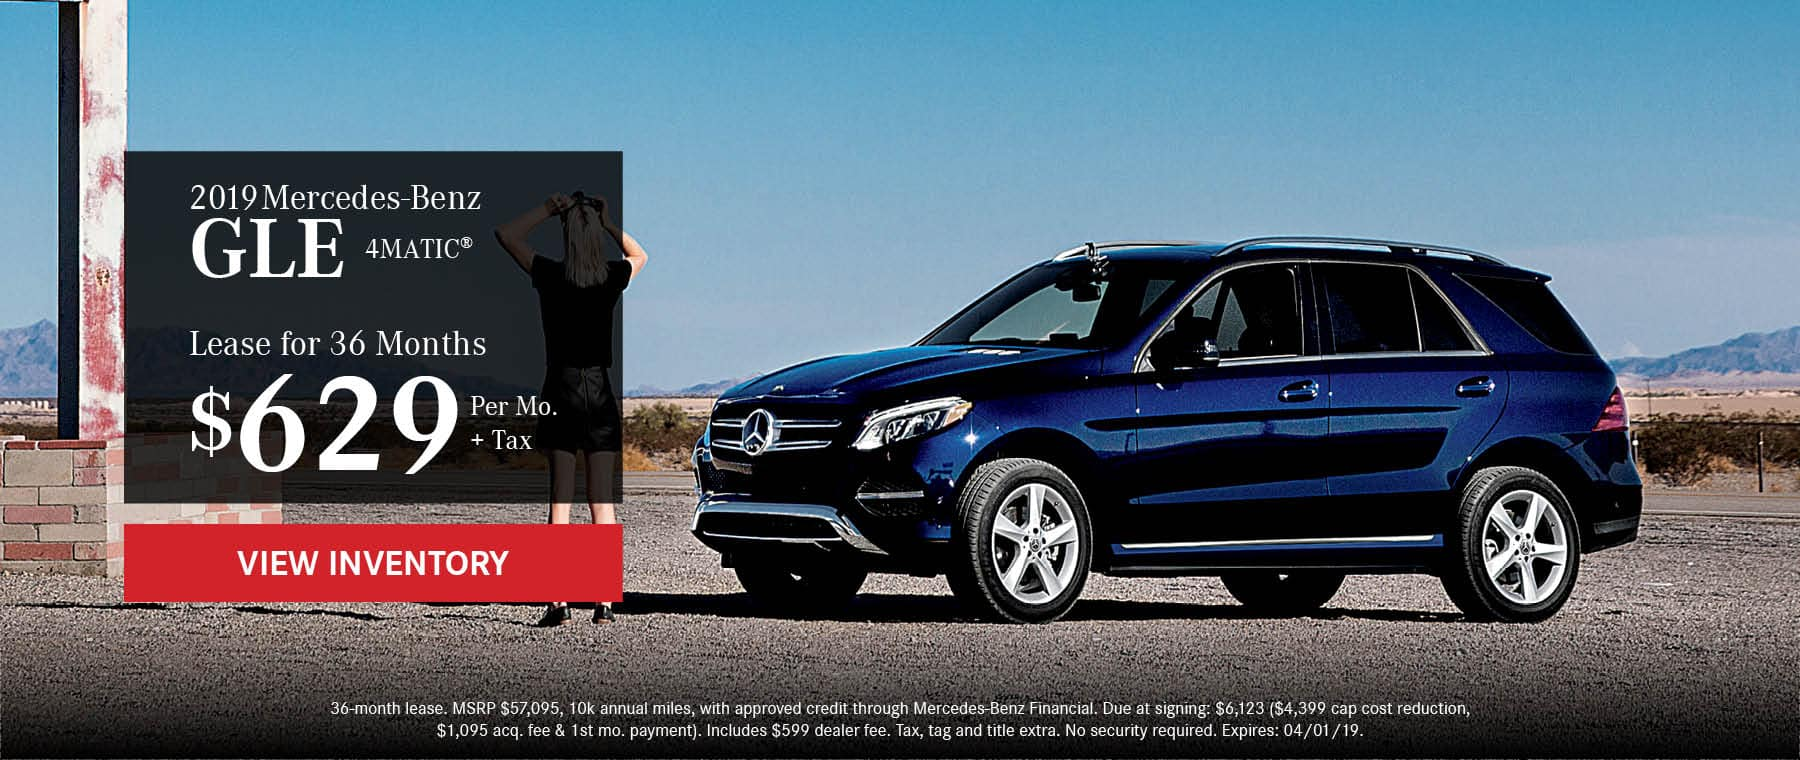 66459-WB-MBOW-2019 MERCEDES-BENZ GLE